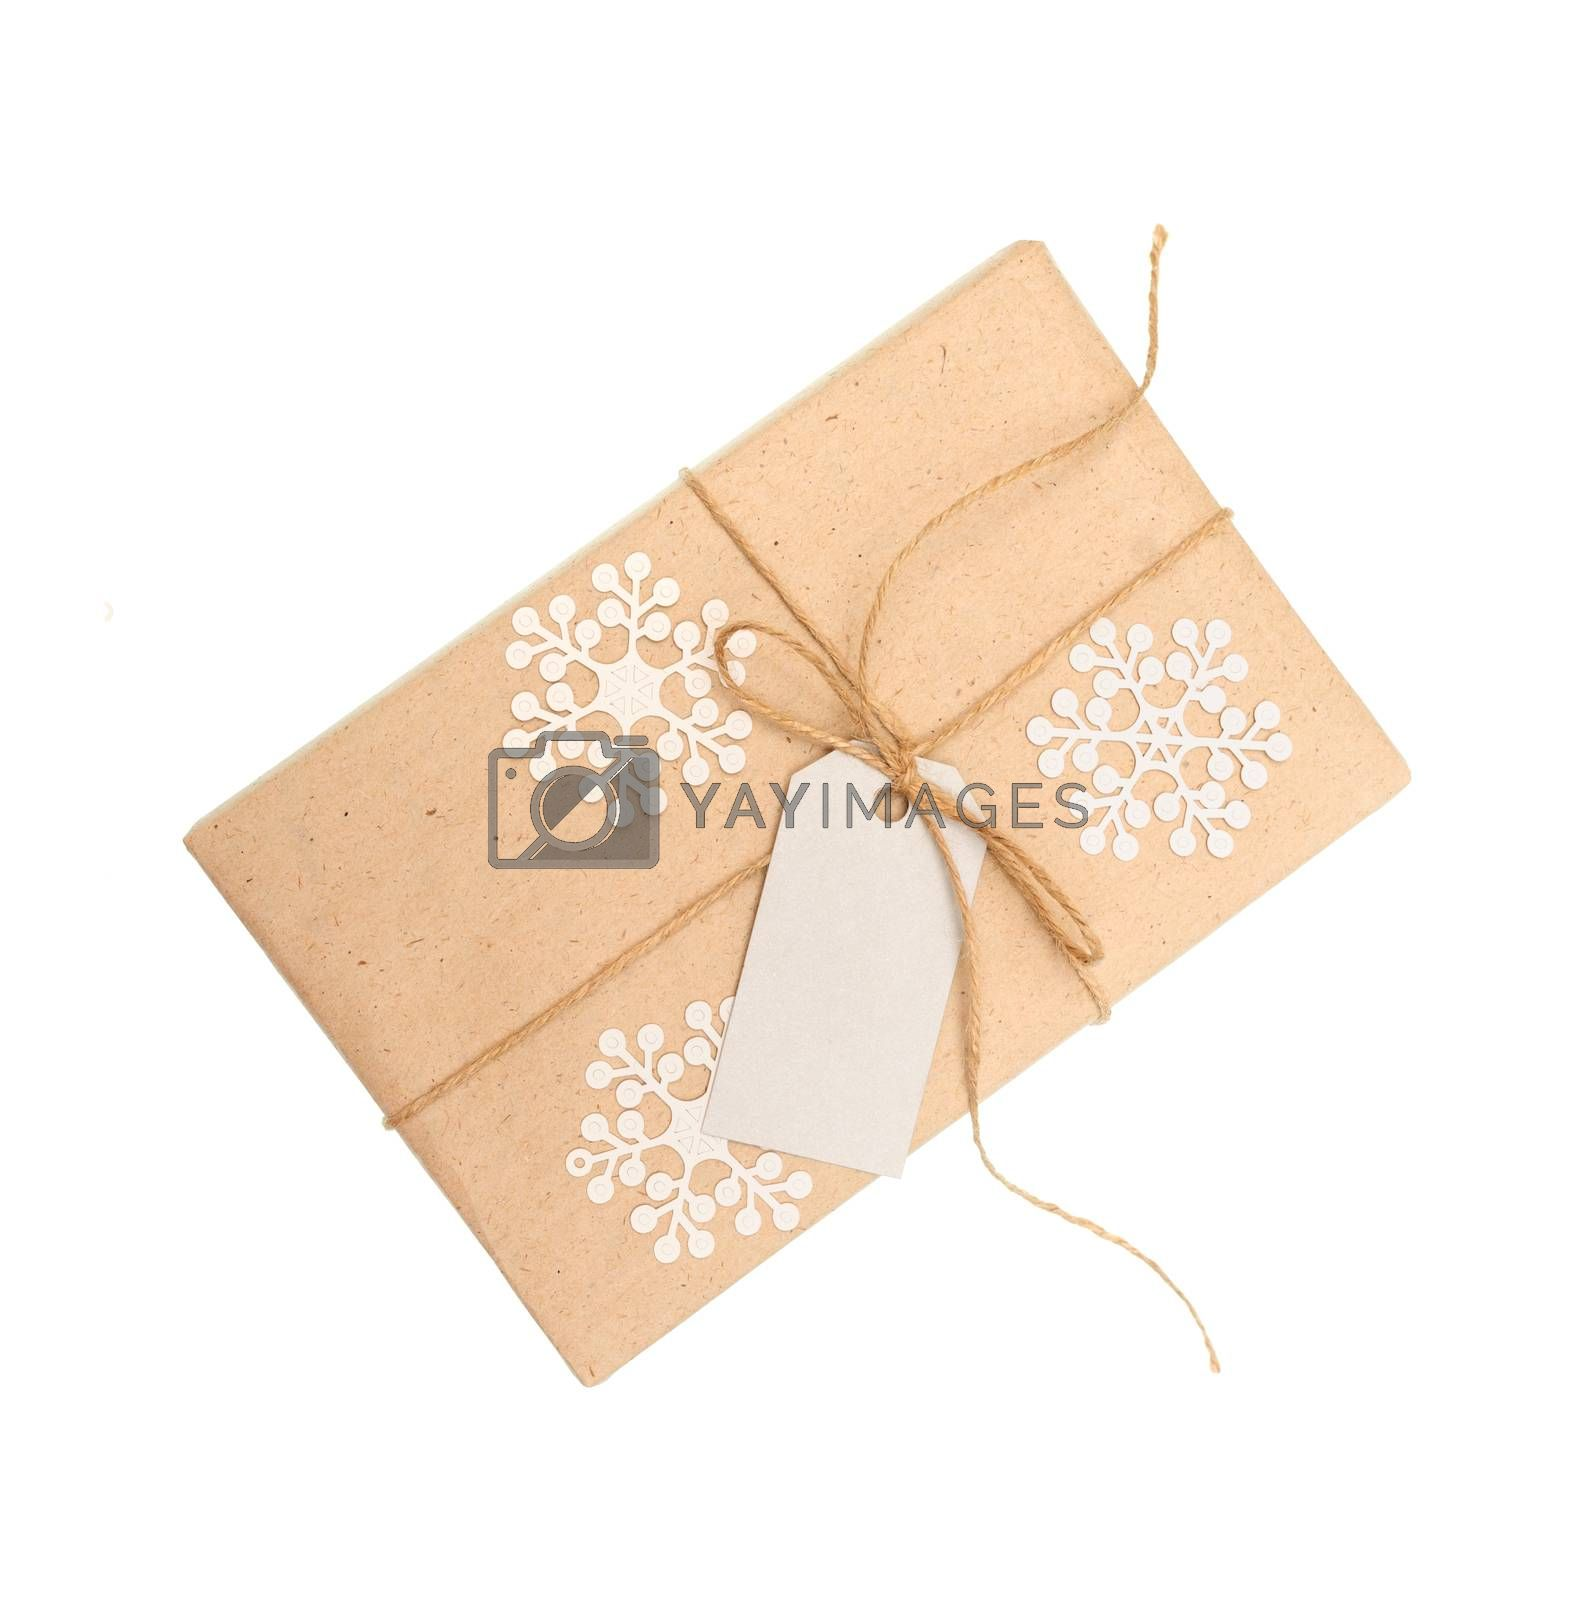 gift box of kraft paper with a tag for text on a white background.